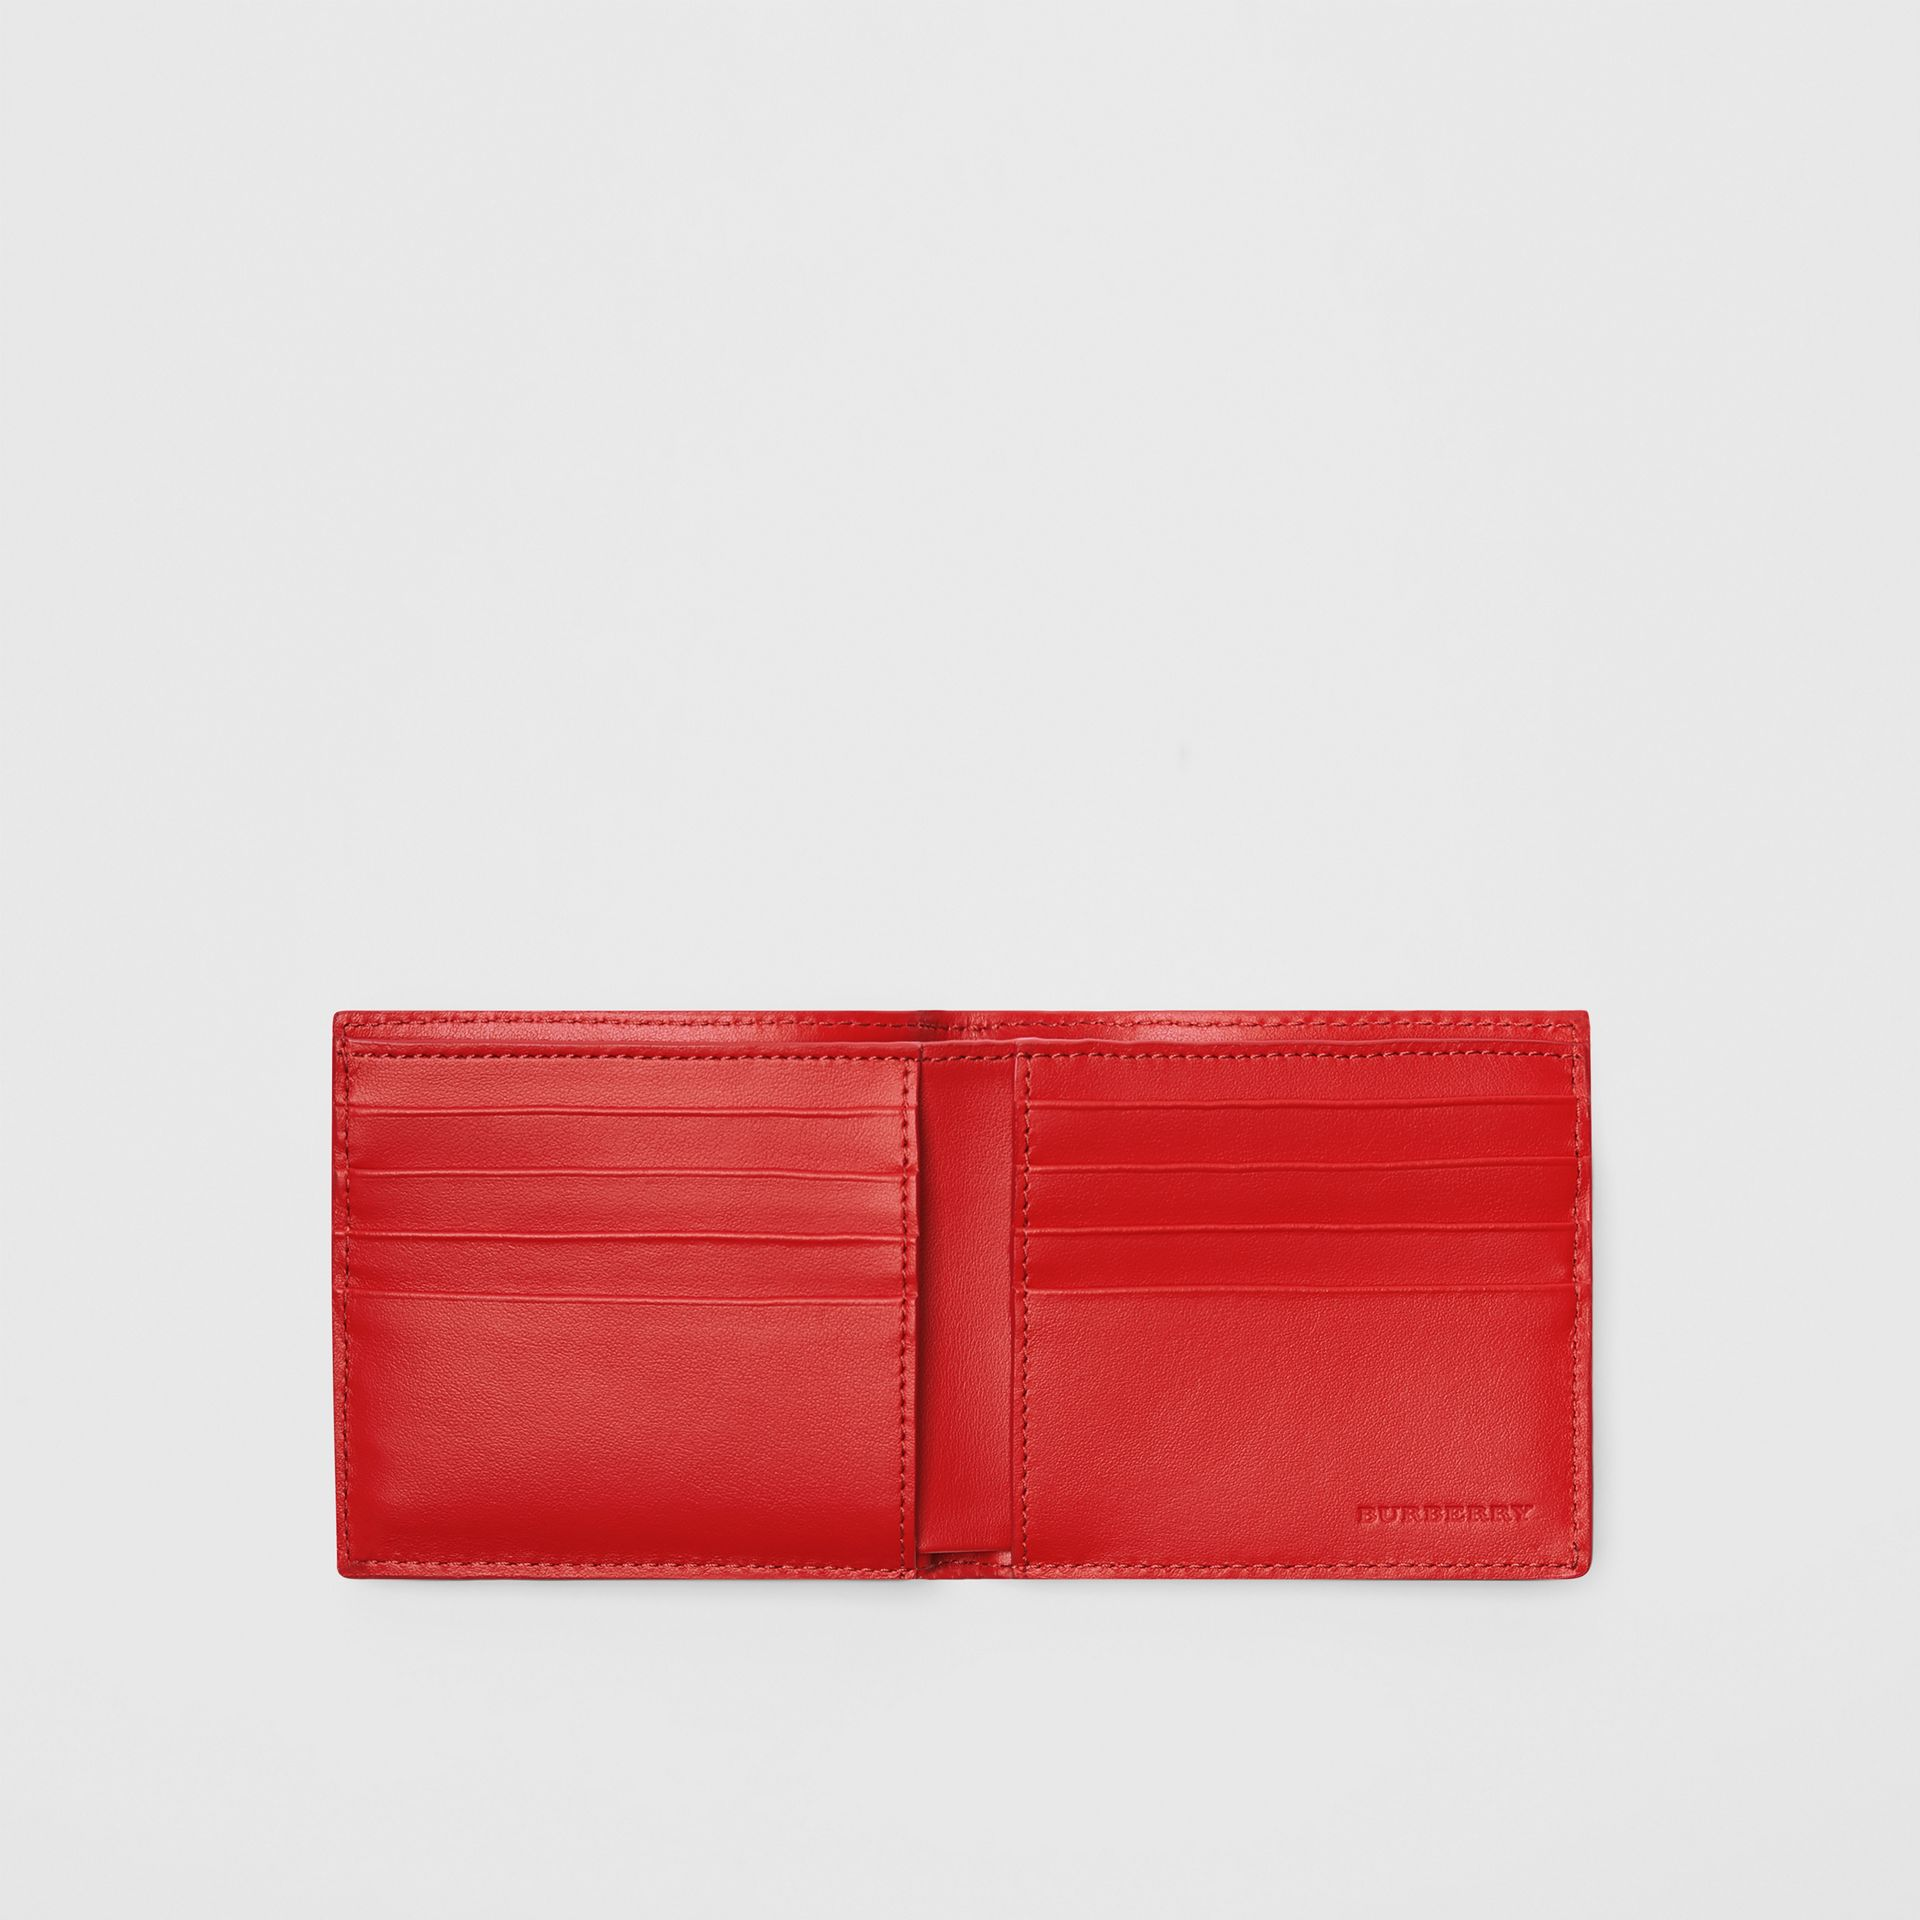 Perforated Check Leather International Bifold Wallet in Rust Red - Men | Burberry United Kingdom - gallery image 2